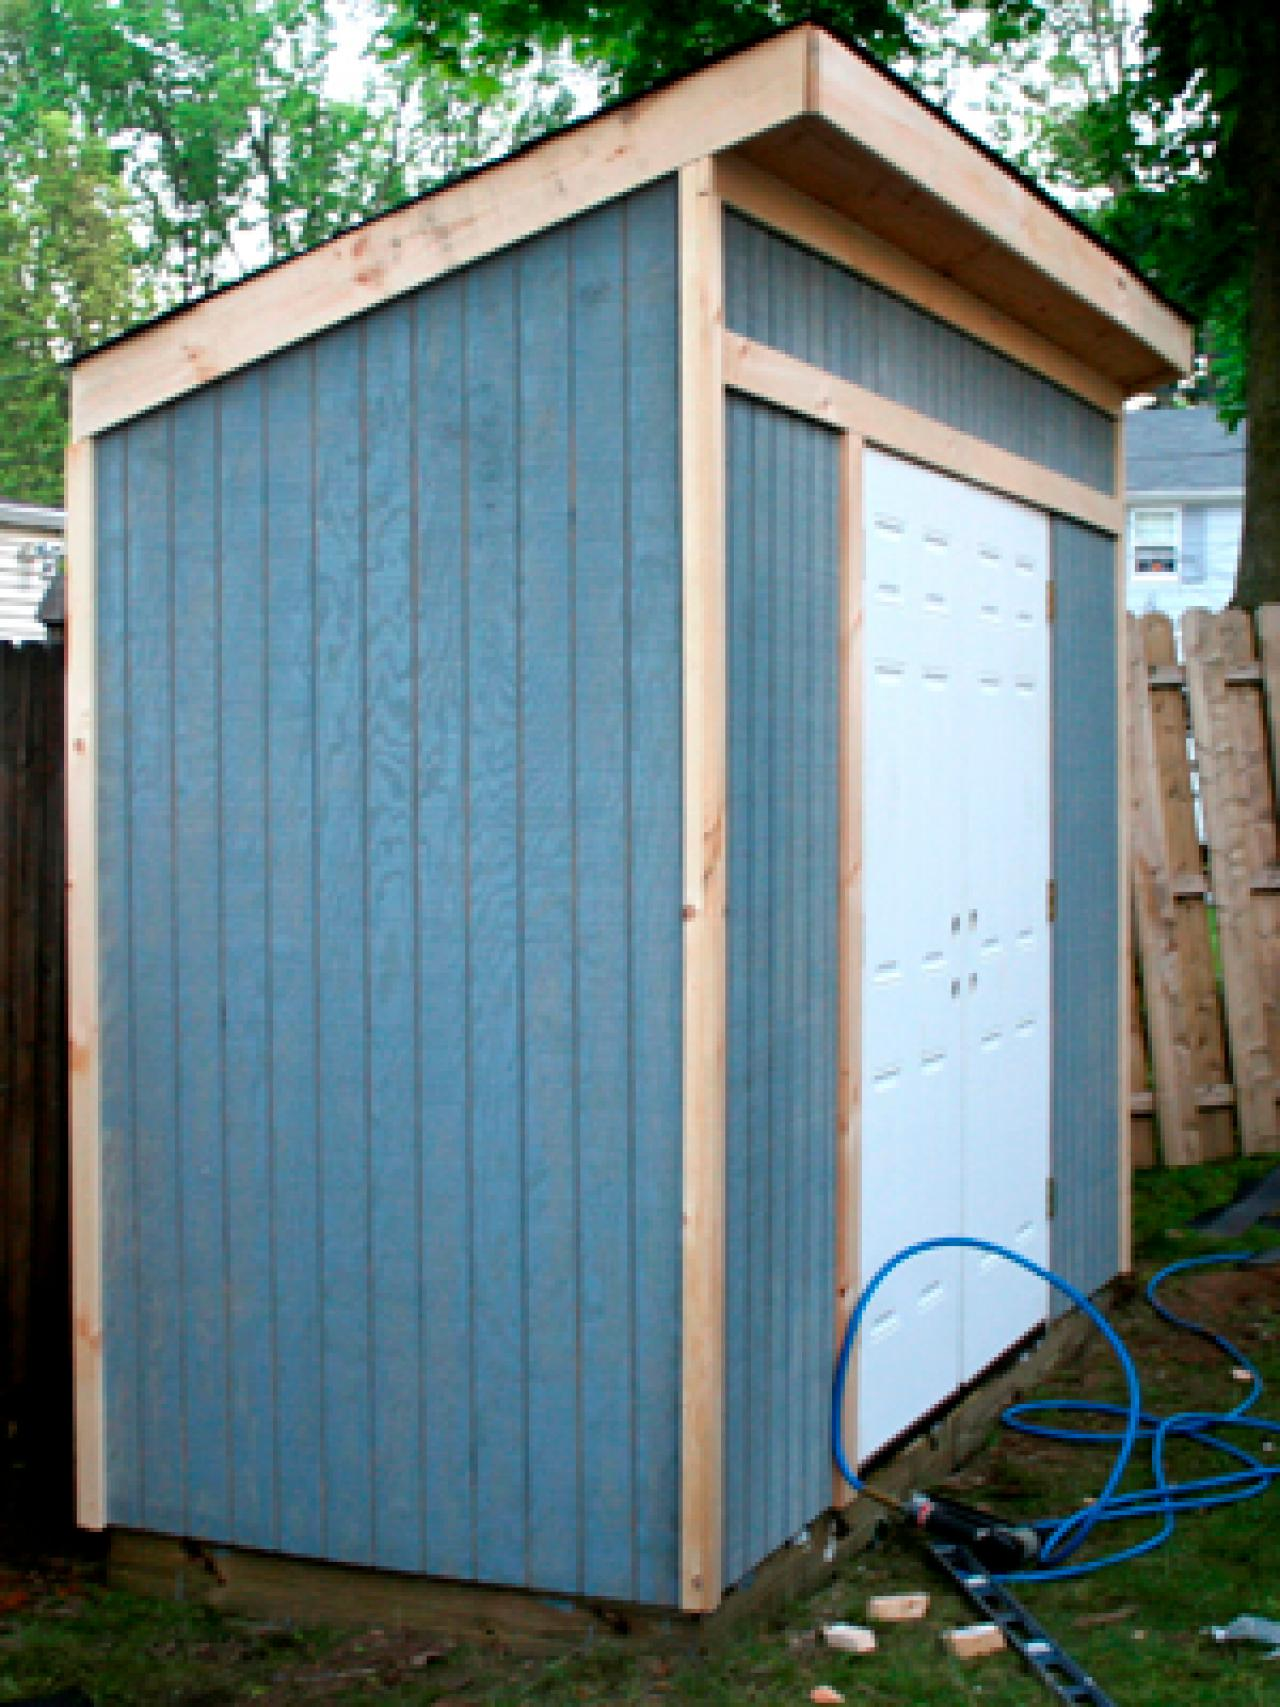 Merveilleux How To Build A Storage Shed For Garden Tools